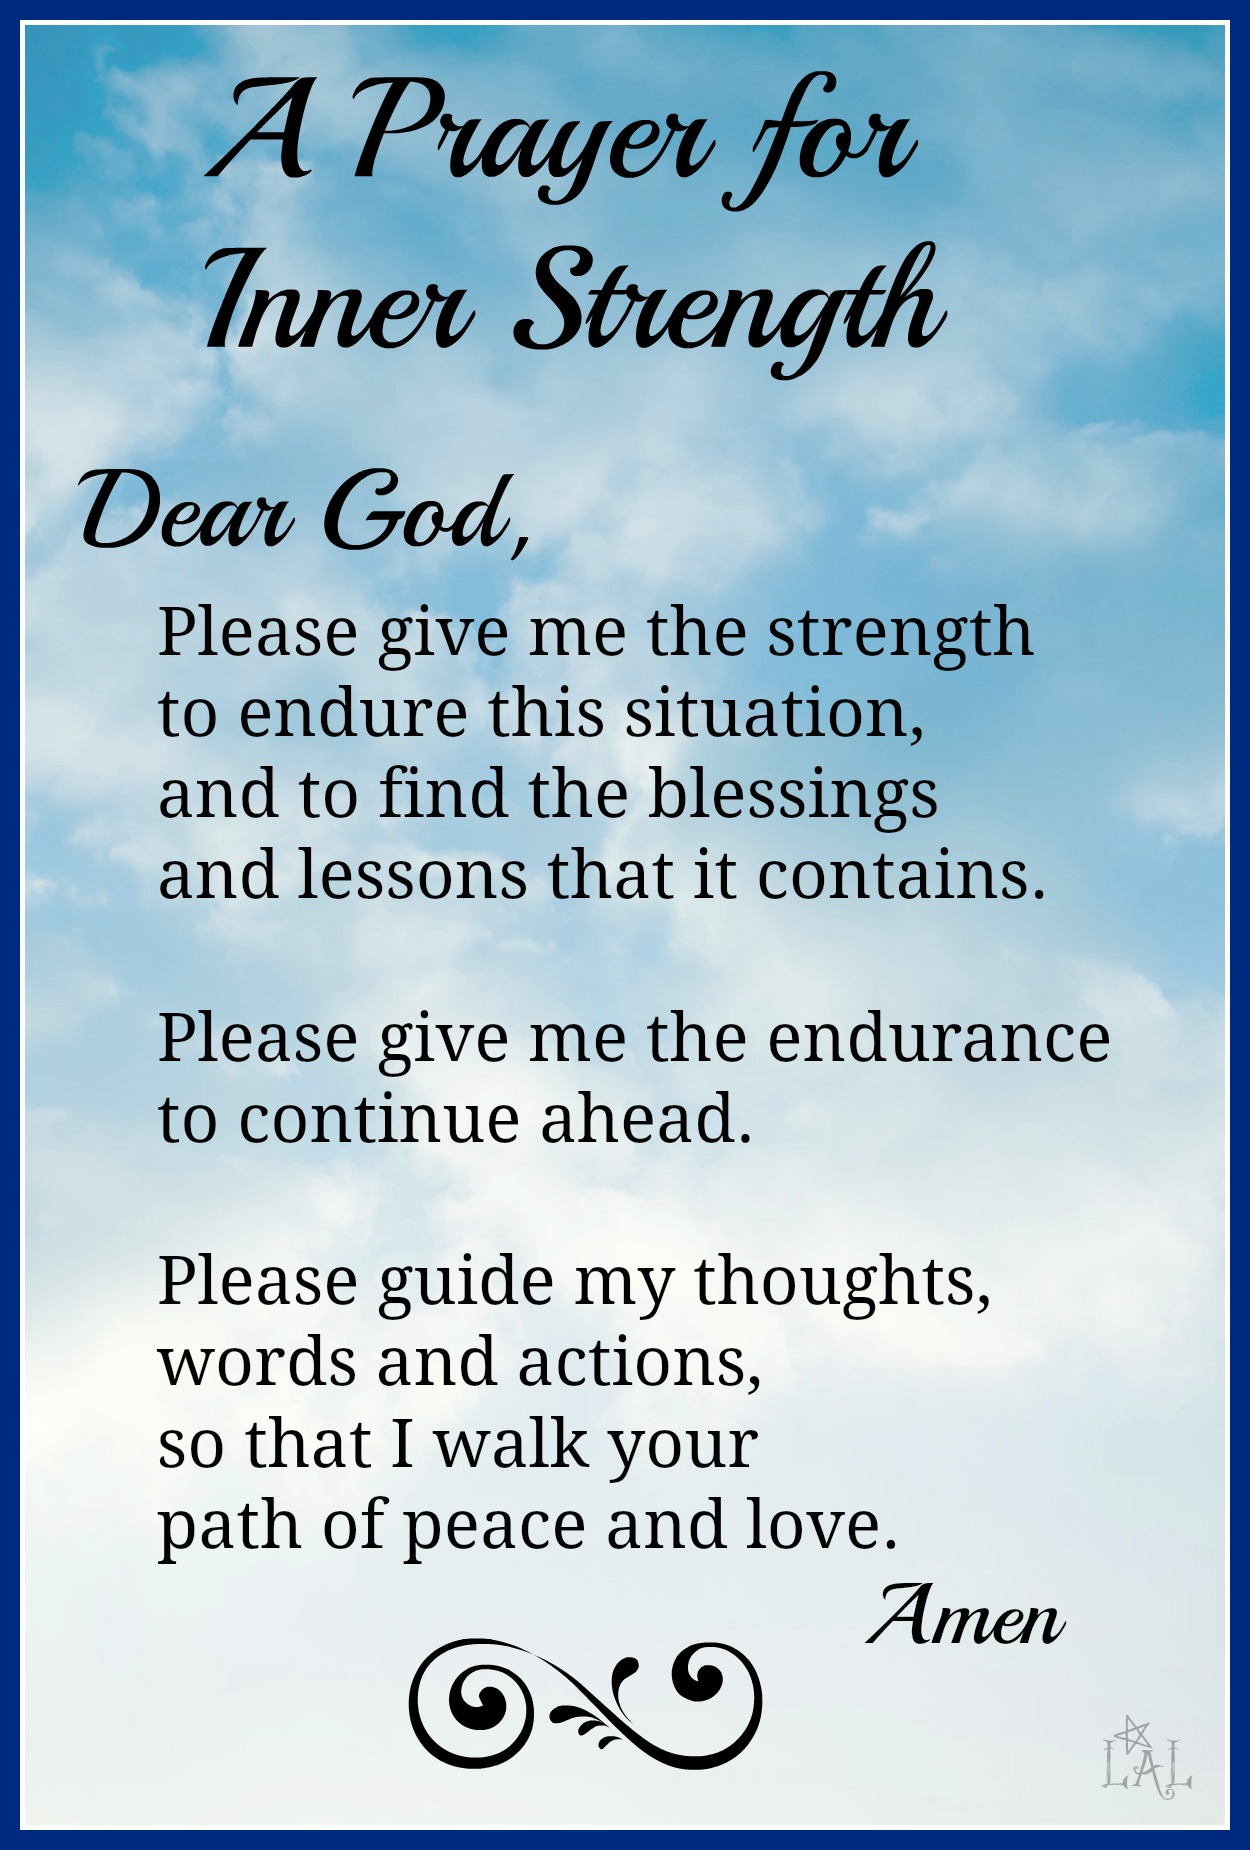 Prayer for Inner Strength | SUPPORT FOR OSCAR PISTORIUS